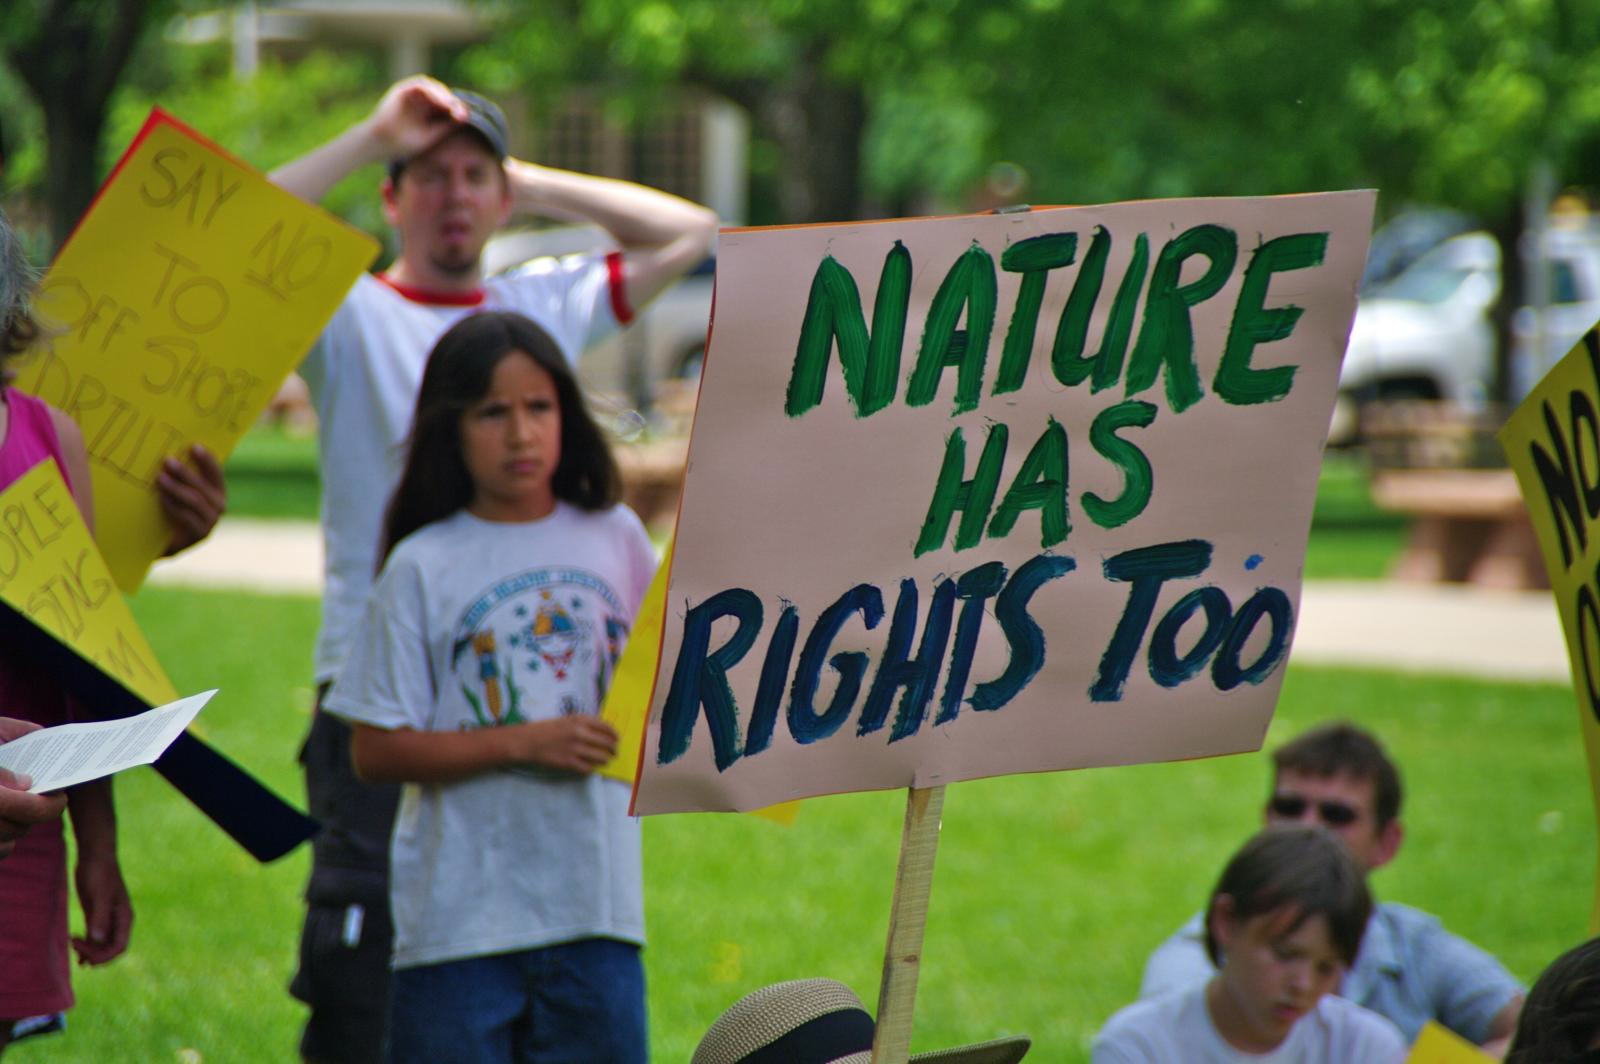 4 photo nature has rights too.jpg